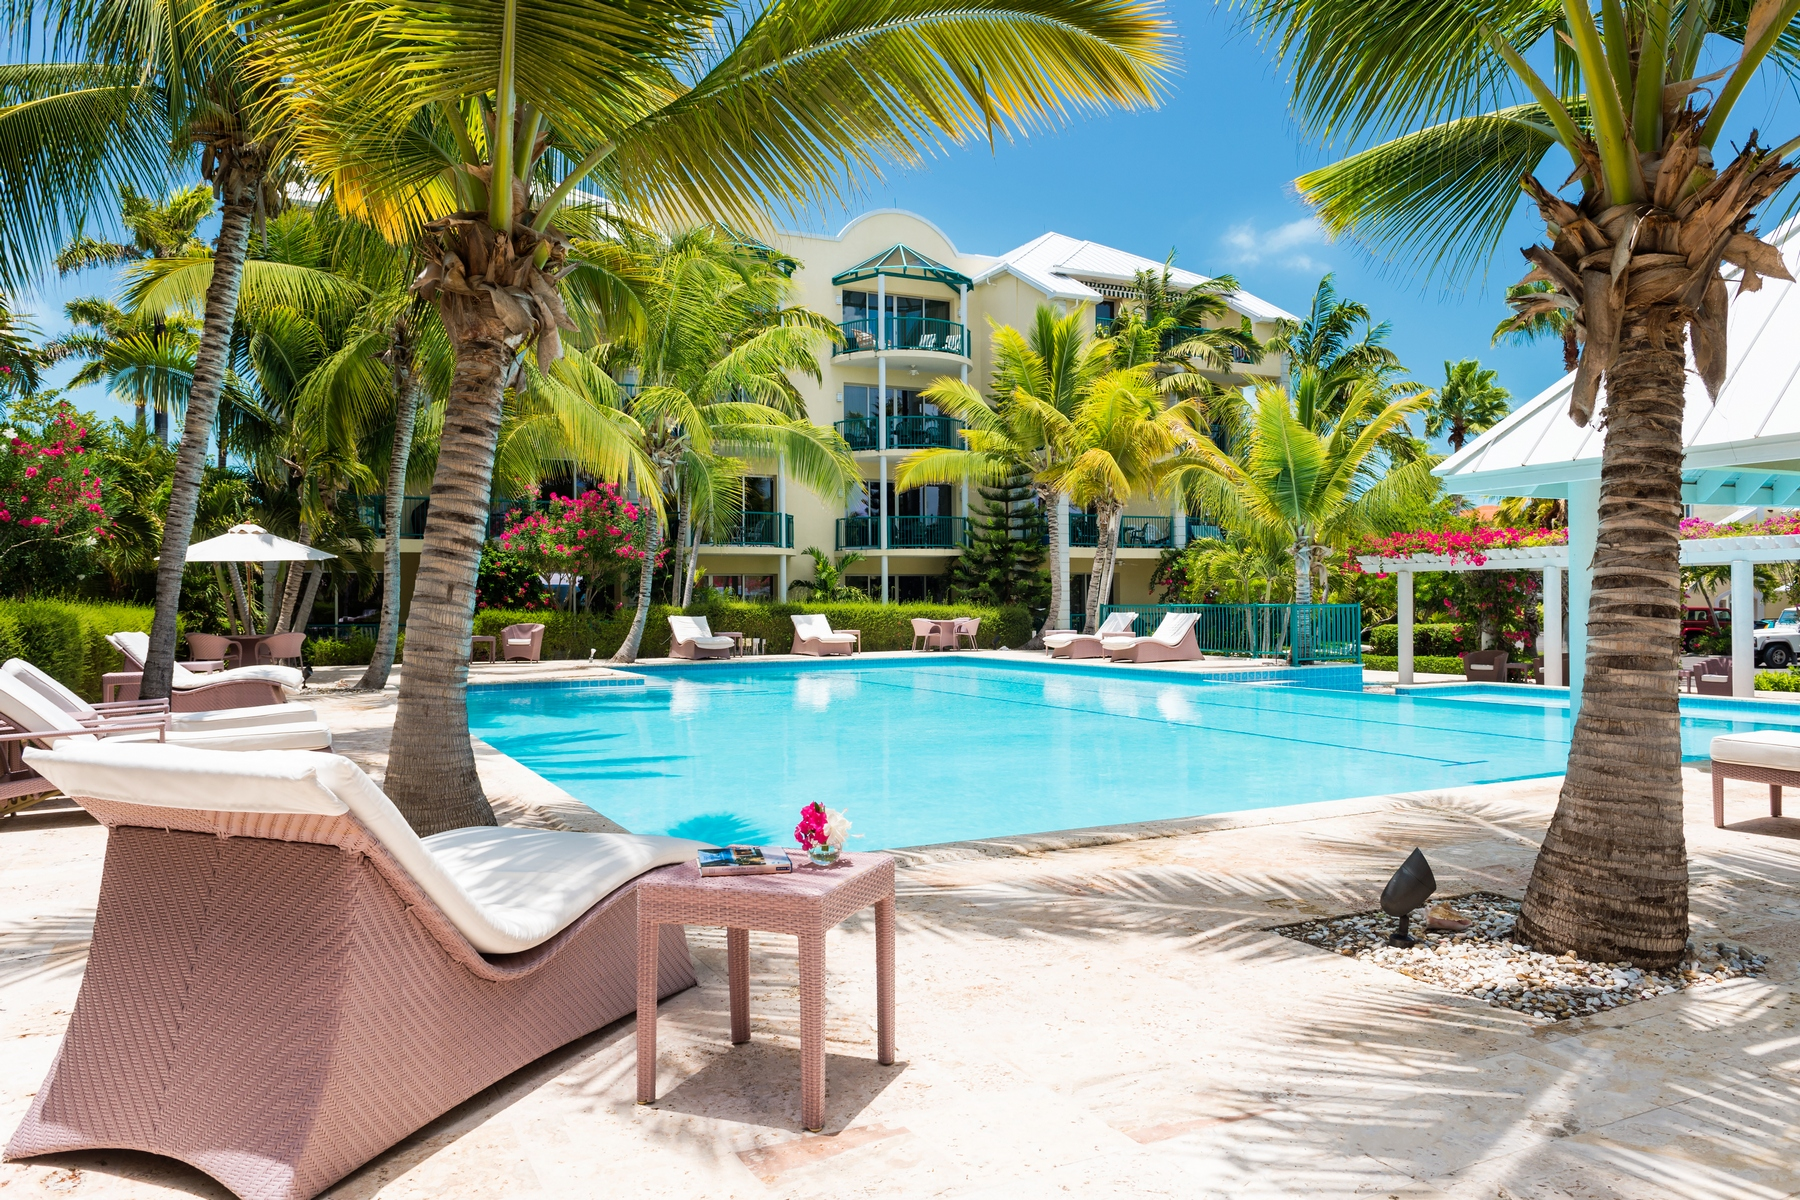 Condominium for Sale at The Yacht Club - B9 The Yacht Club, Turtle Cove, Providenciales Turks And Caicos Islands